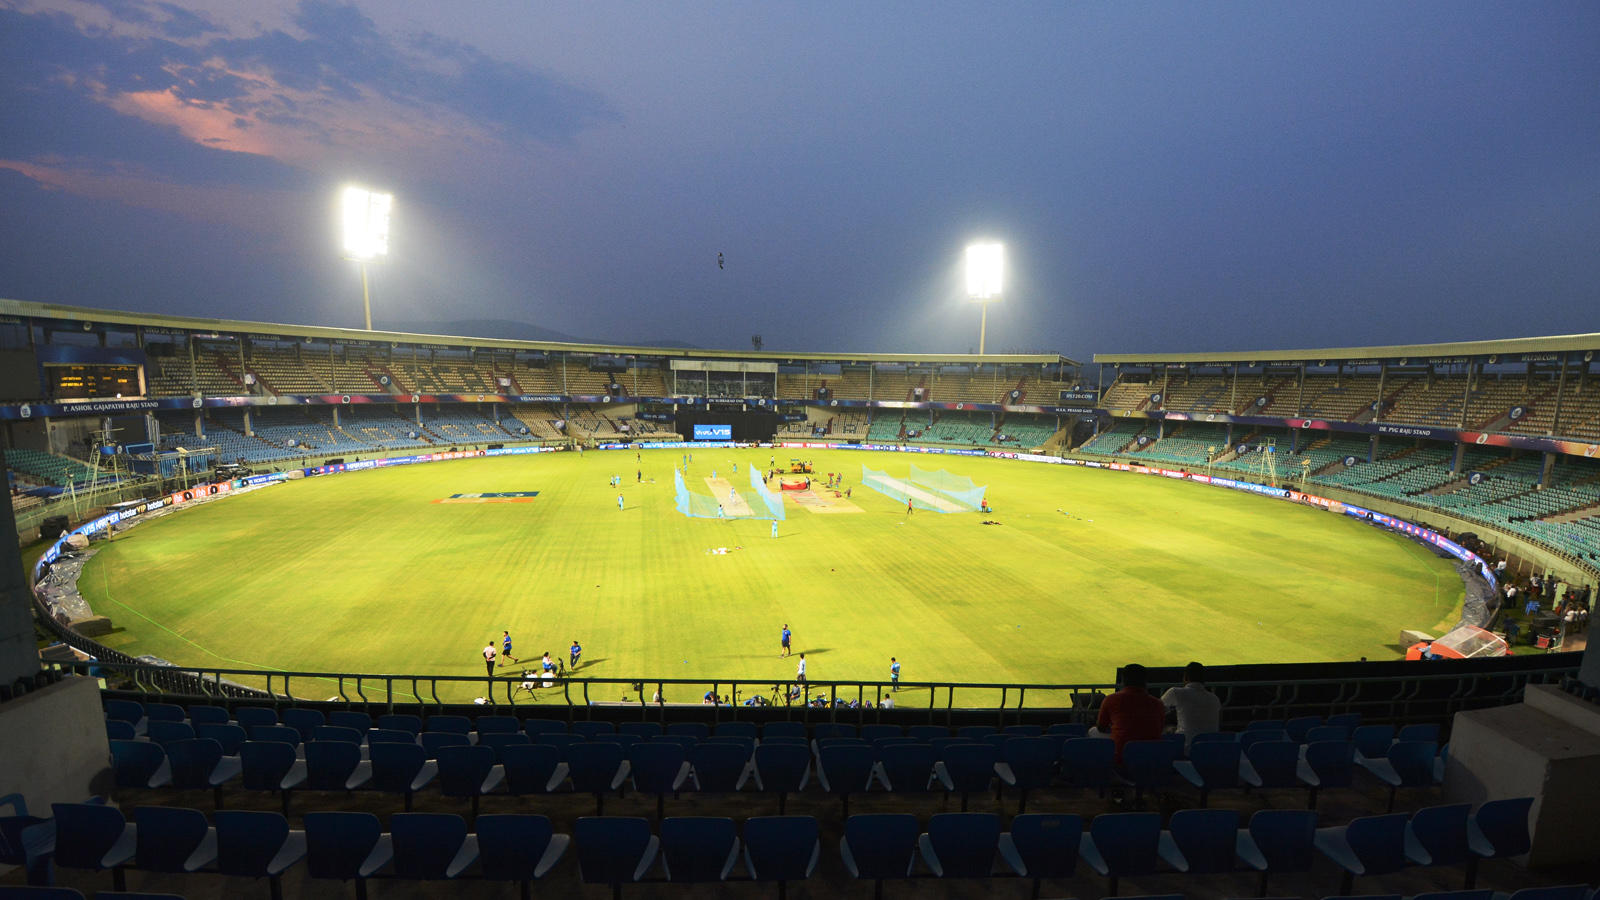 after-uae-and-sri-lanka-new-zealand-offers-to-host-ipl-says-bcci-official